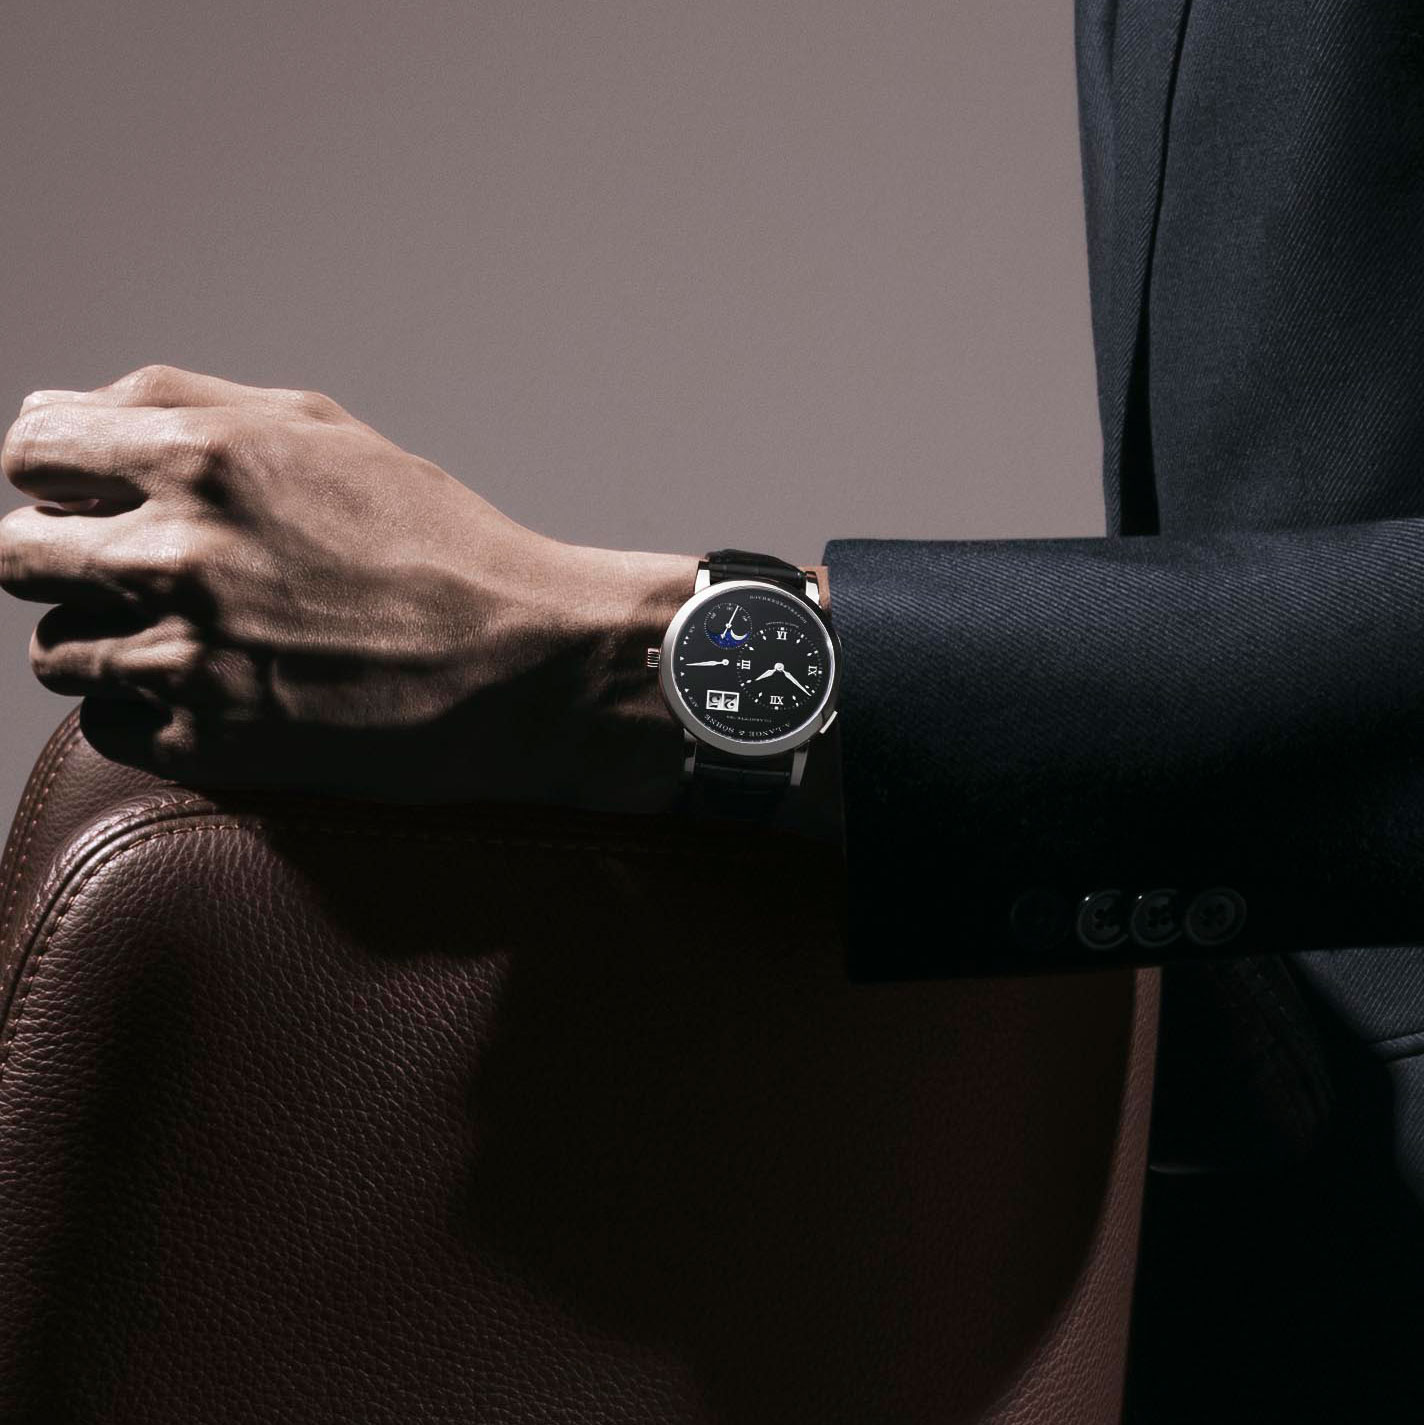 Lange 1 Moon Phase (Image © Revolution)